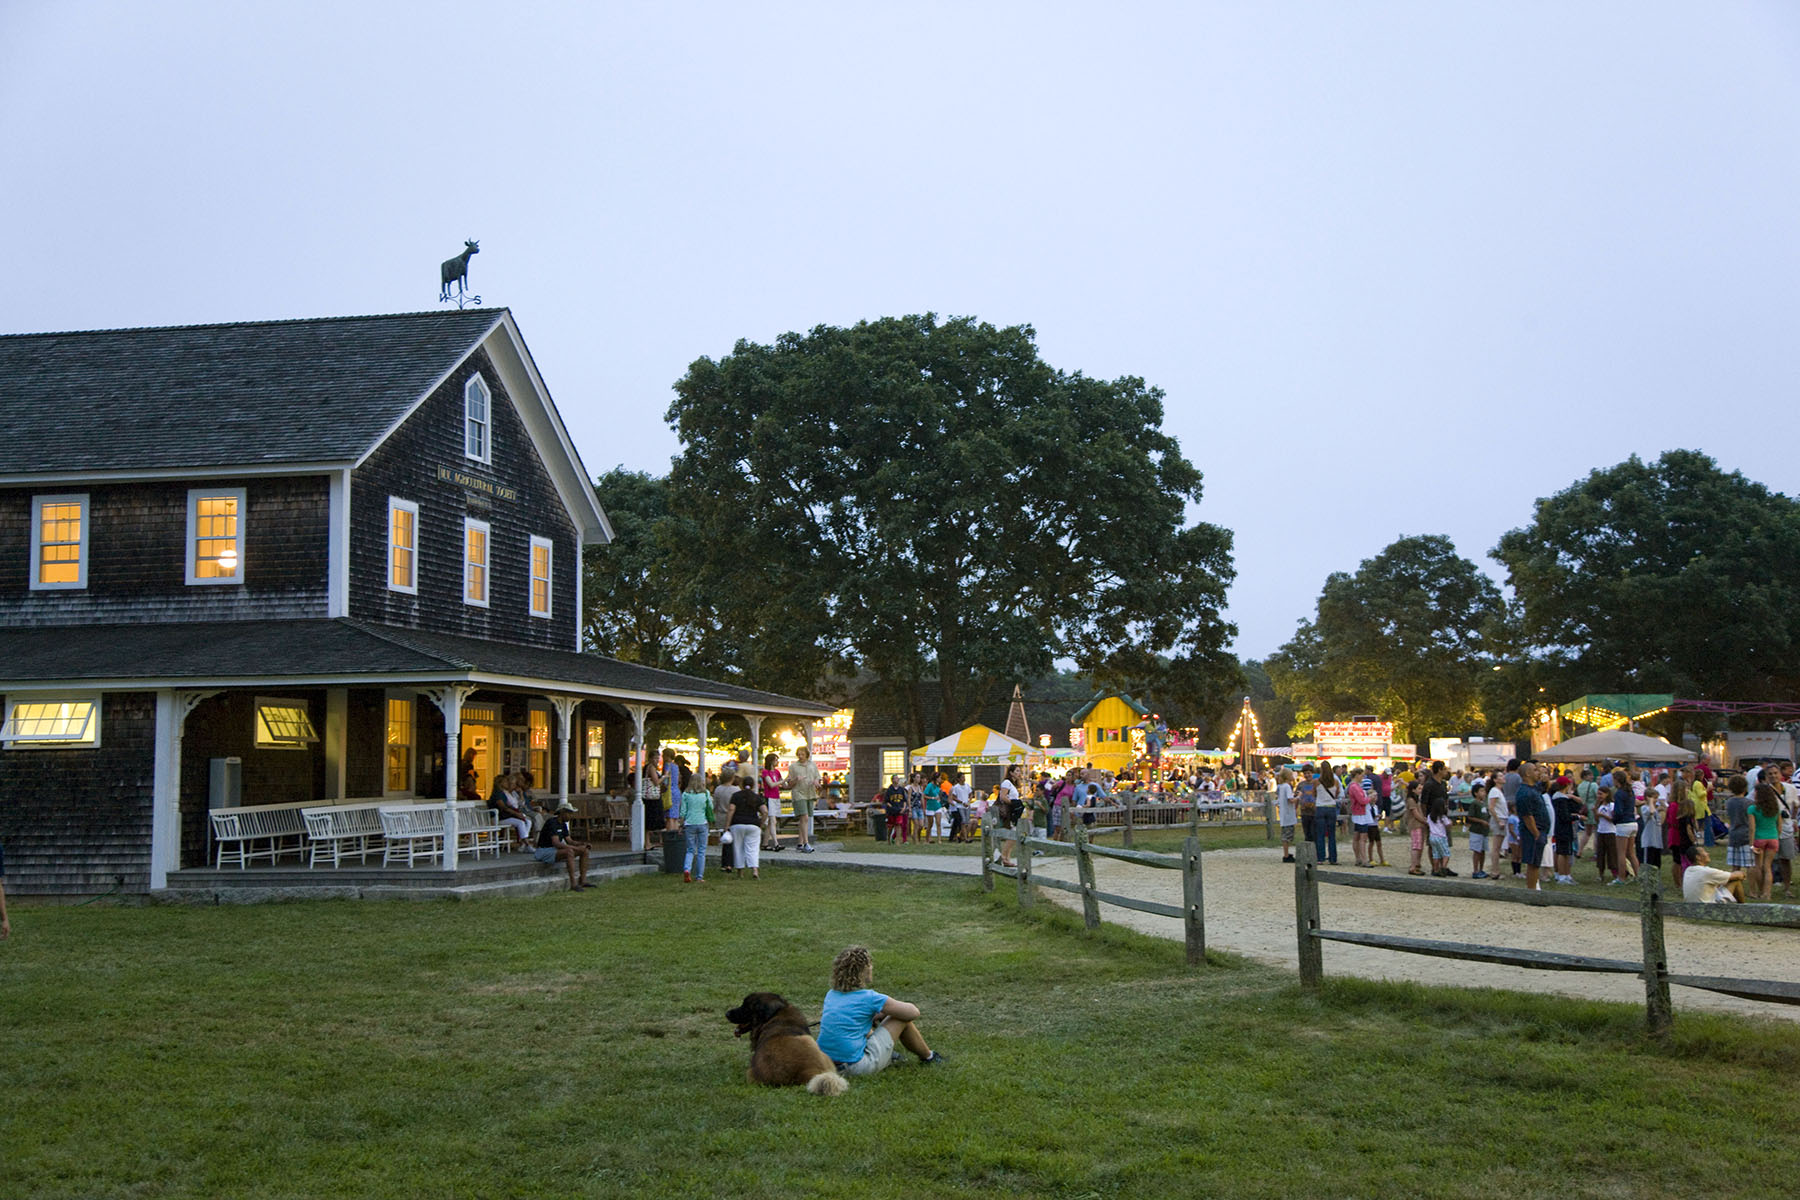 Fair goers at the 147th annual Martha's Vineyard Agricultural Society Fair.   The annual event brought traditional livestock contests, racing pigs, rides and more to island off Cape Cod in Massachusetts. Photo by Brooks Kraft/Corbis